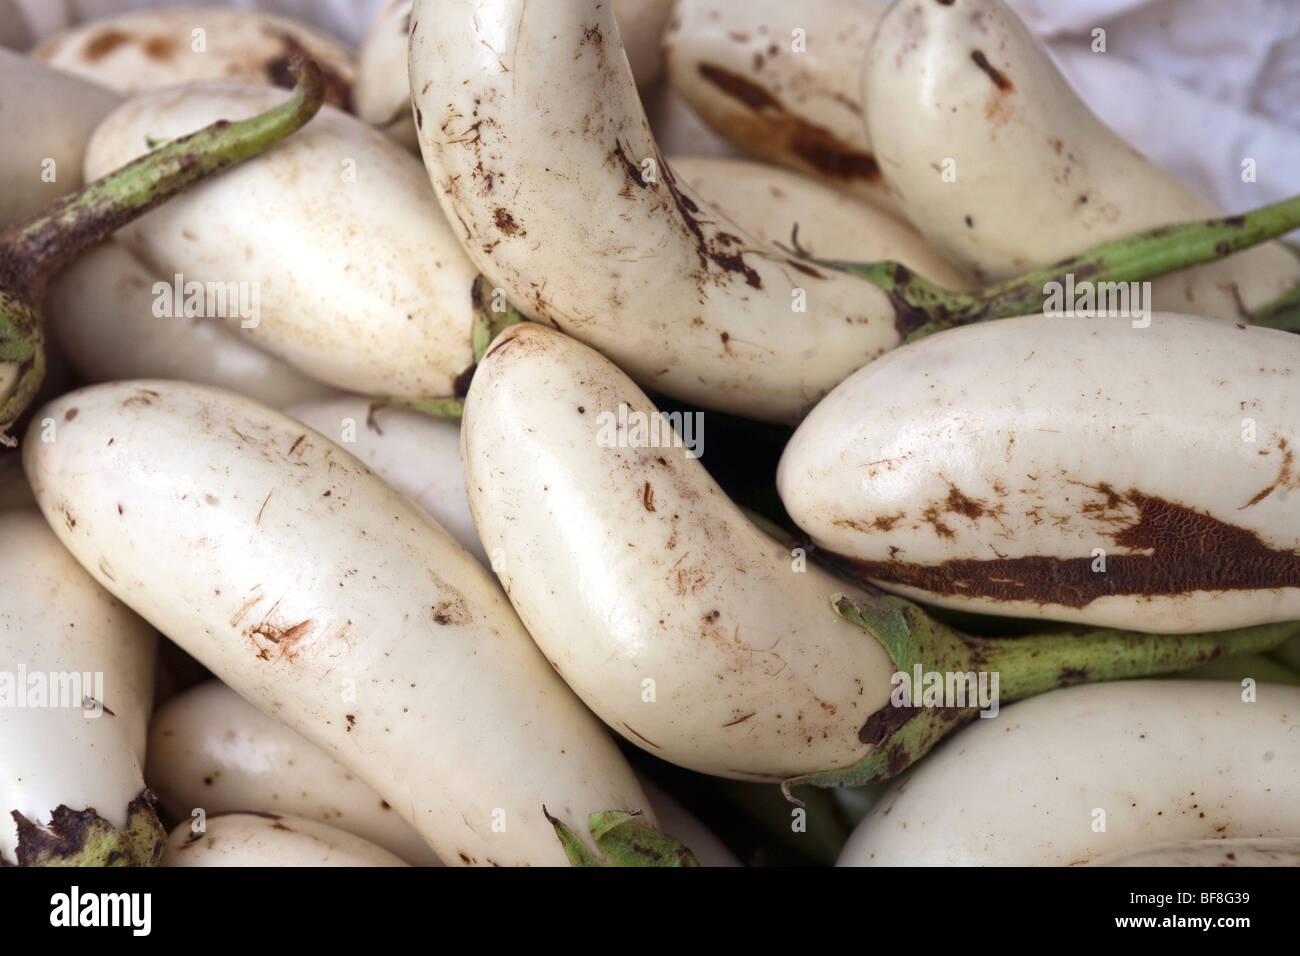 gleaming shapely healthy raw beautiful white eggplant displayed for sale at Union Square farmers green market in - Stock Image